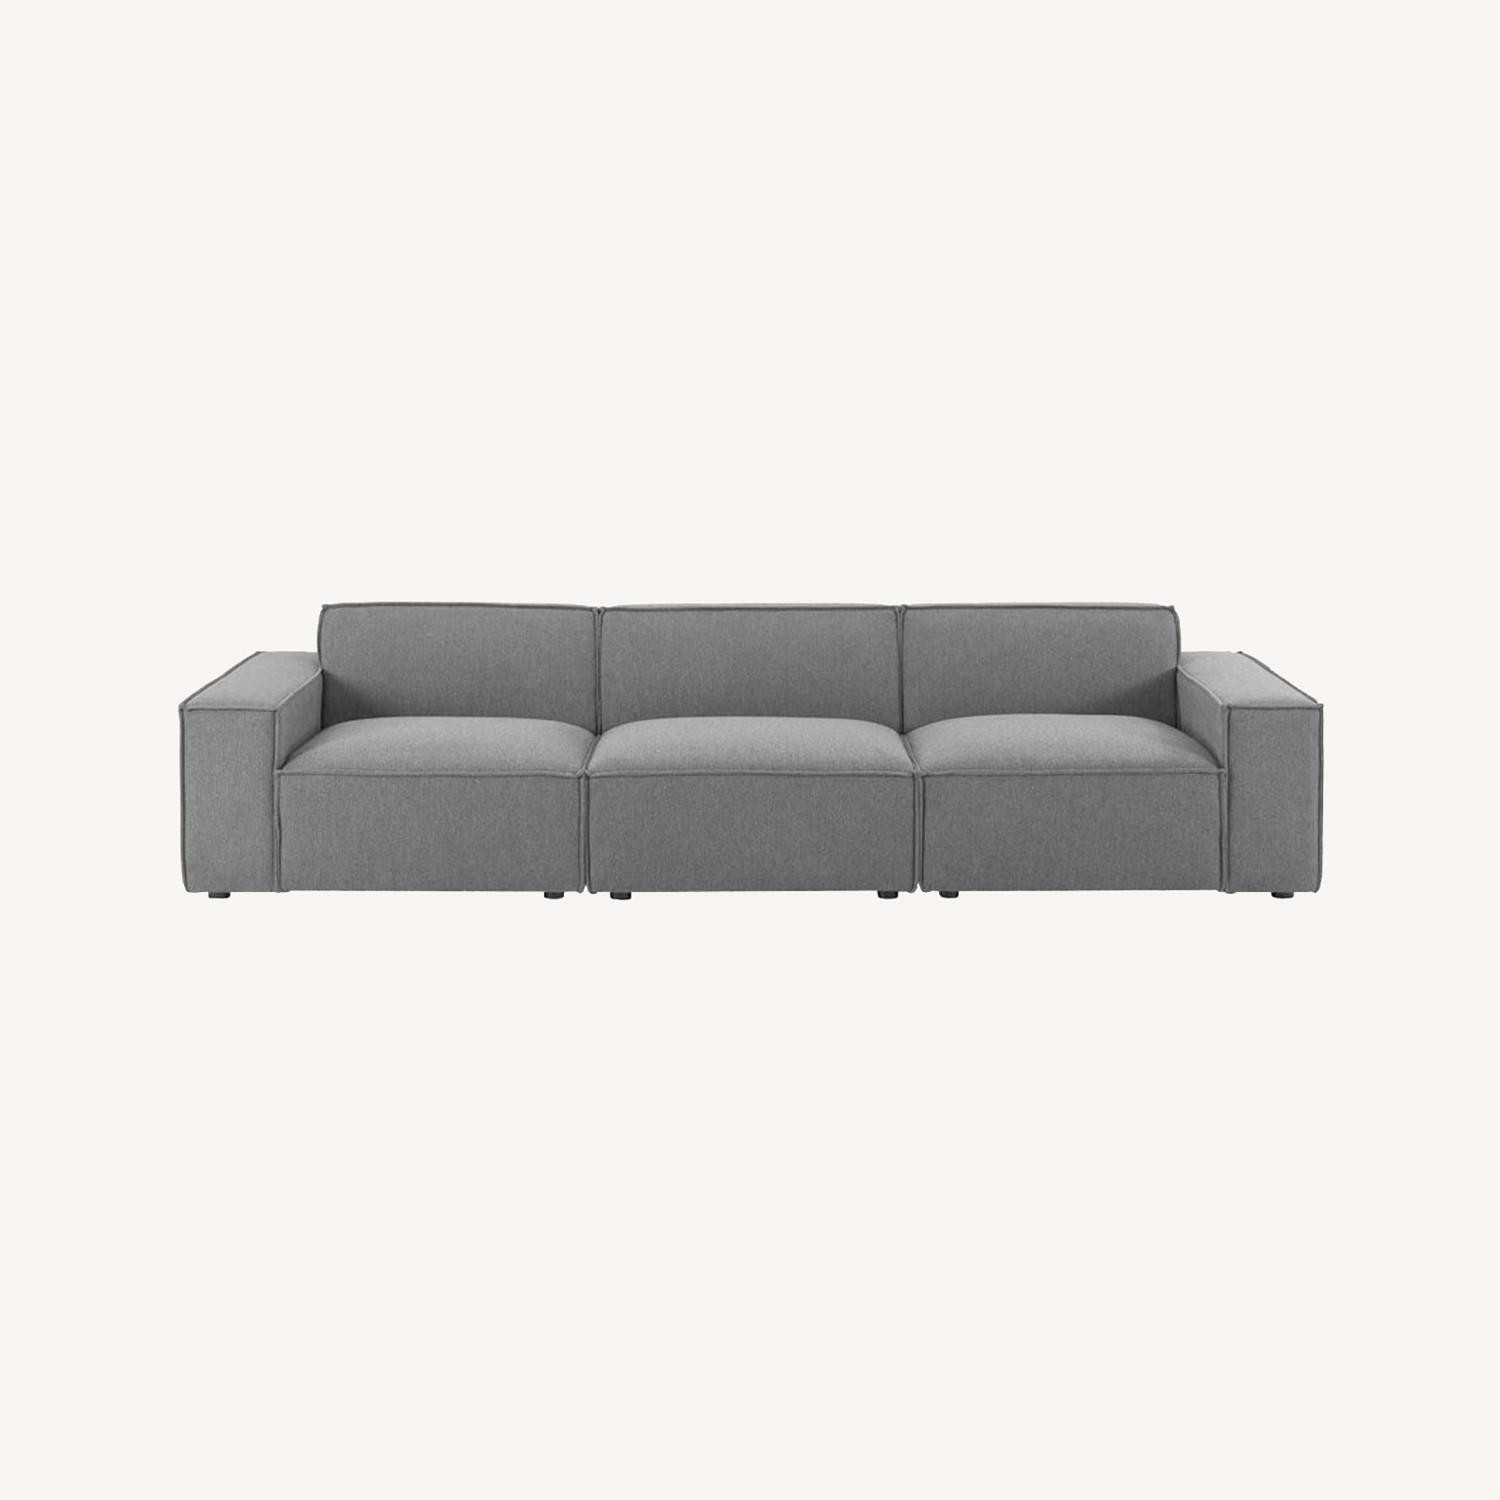 3-Piece Sectional Sofa In Charcoal Upholstery - image-12